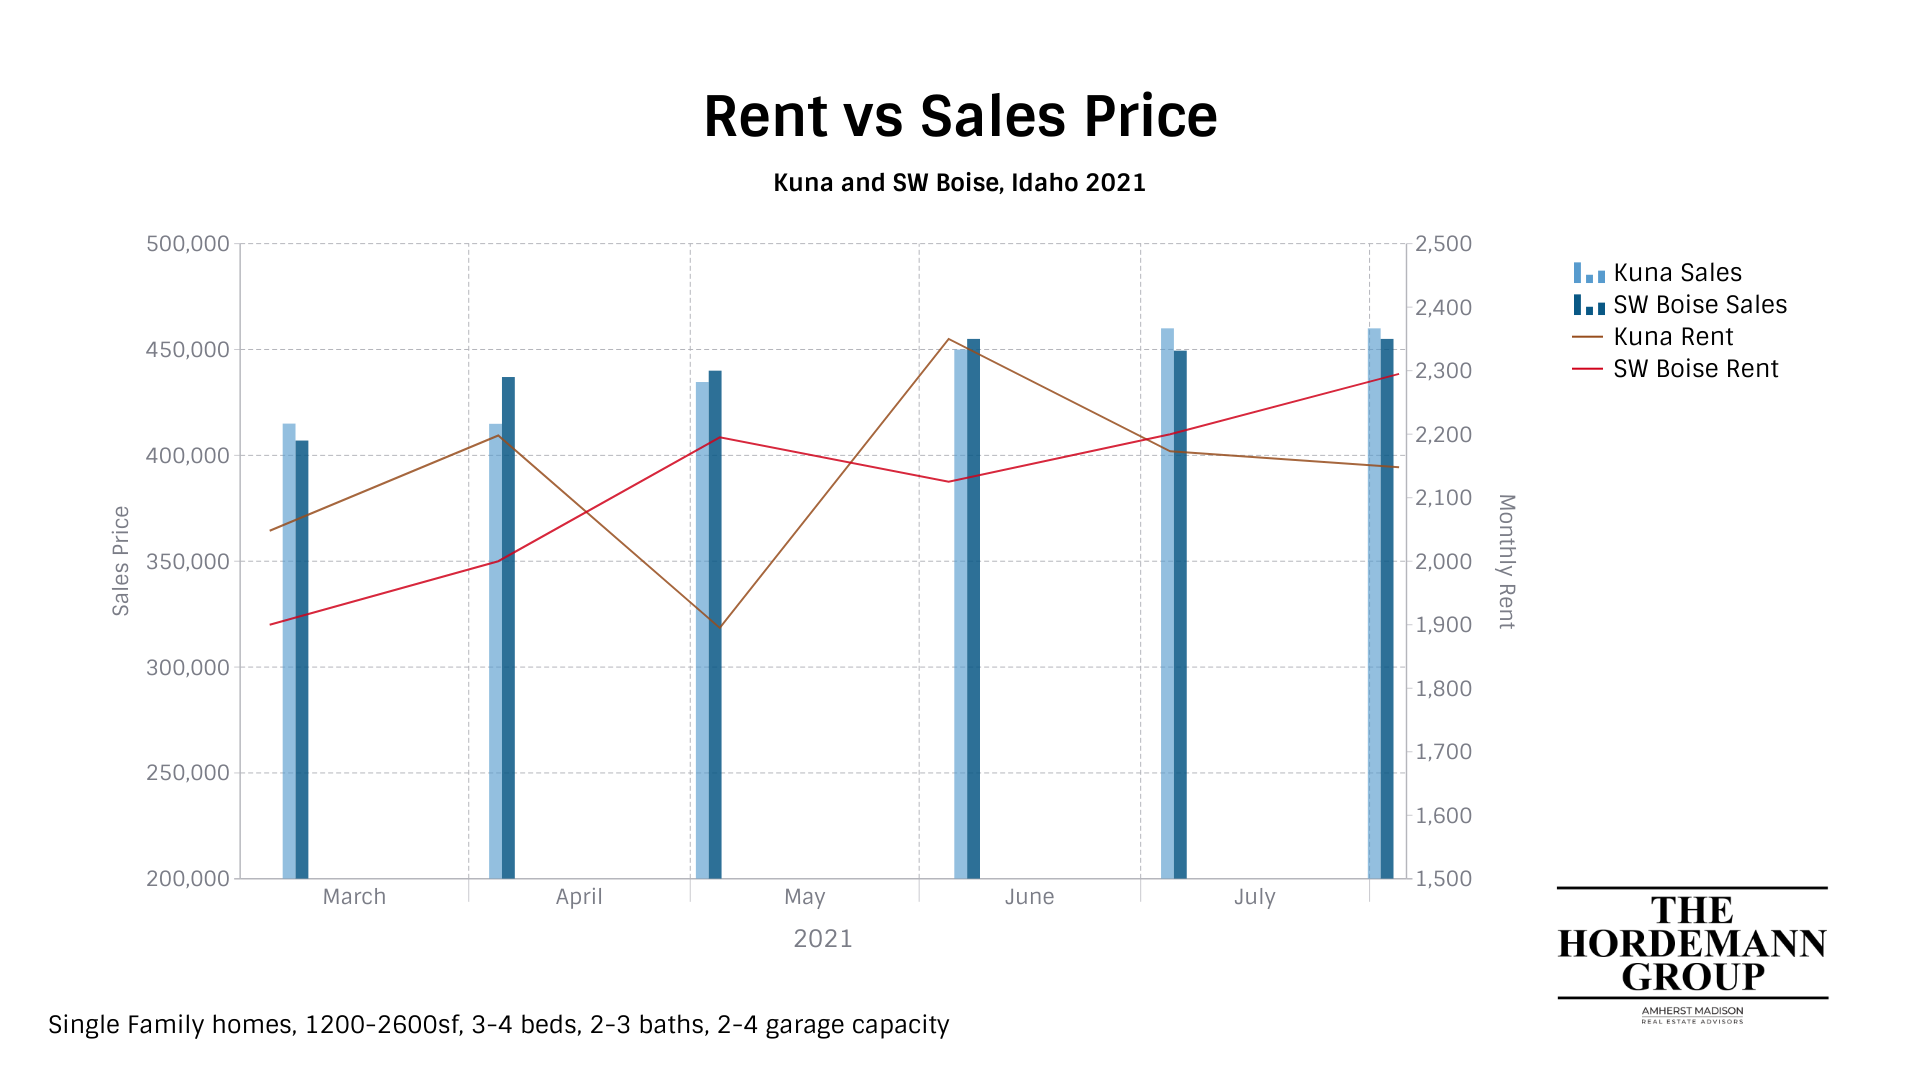 kuna southwest boise rent and sales prices